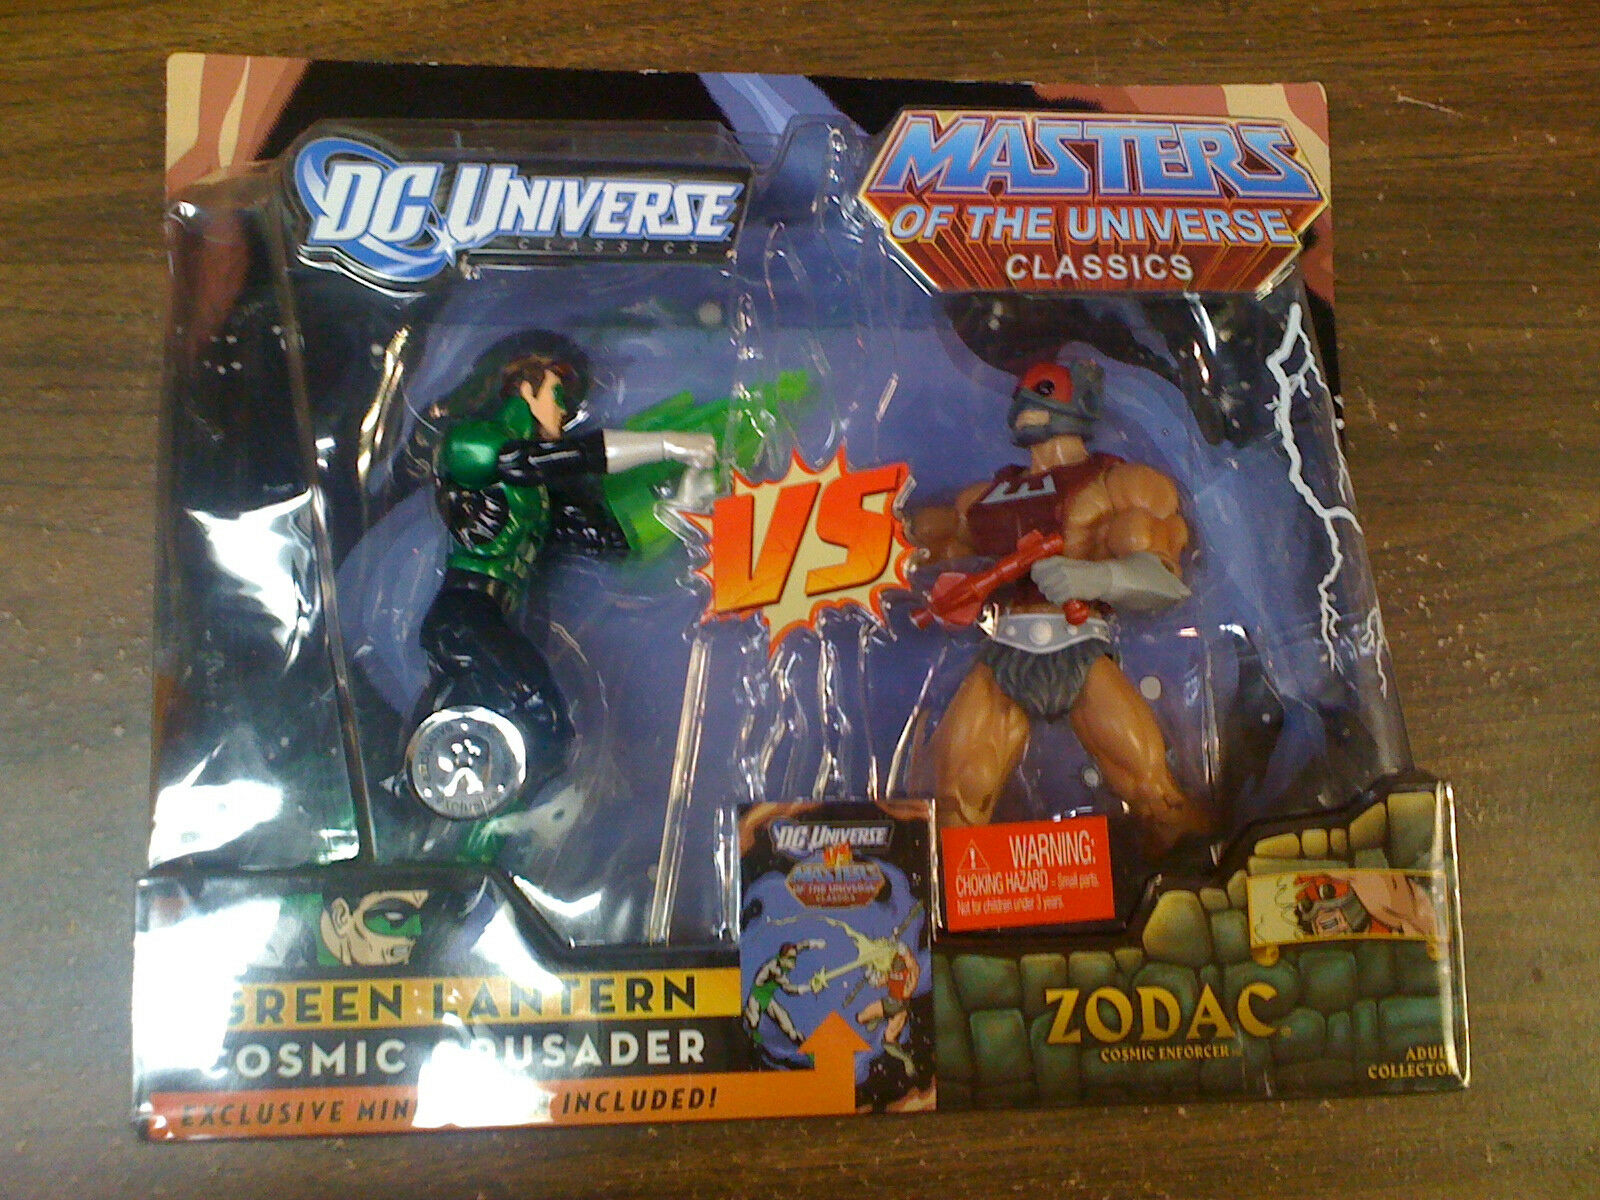 DC Green Lantern Lantern Lantern Caped Crusader VS MOTU Zodac Cosmic Enforcer NEW FREE SHIP US 9a5892